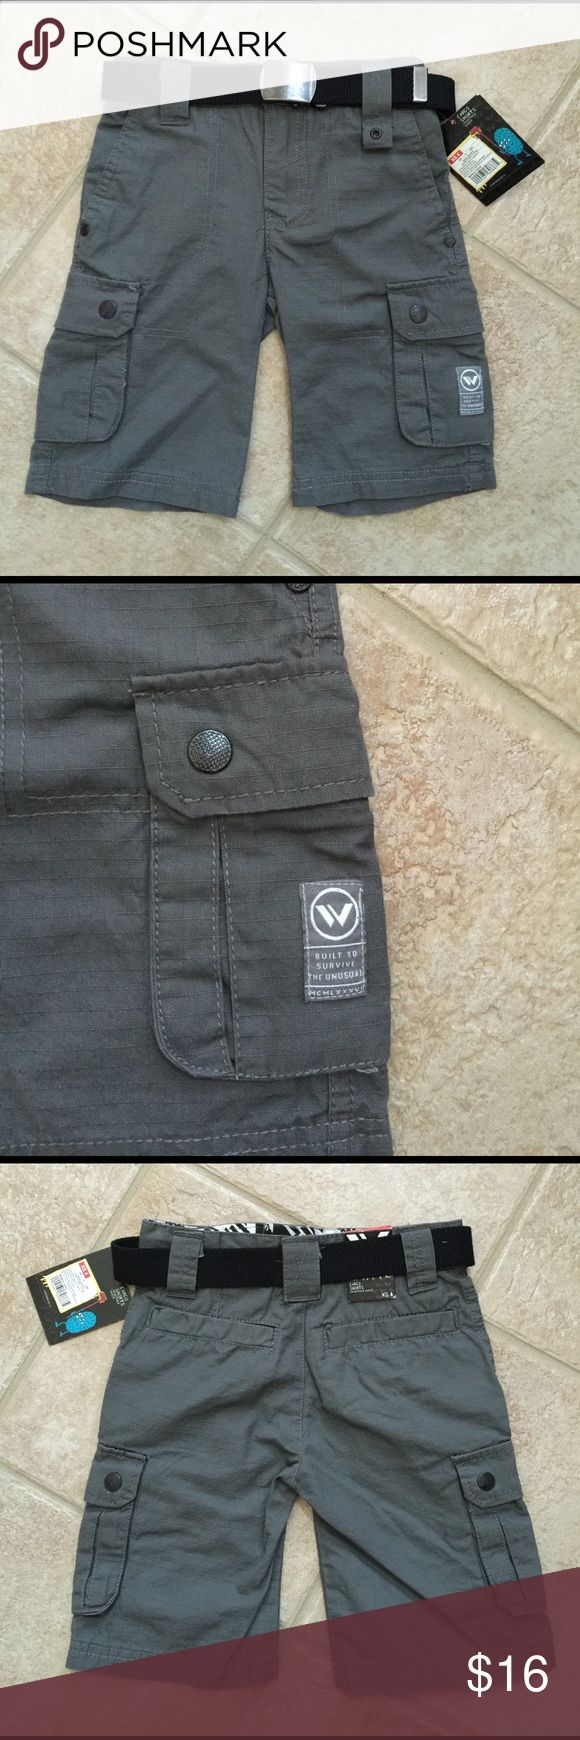 Shaun White Boys Gray Cargo Shorts w/ Black Belt Shaun White Boy's Cargo Shorts  I love Shaun White boys' clothing!  It features many aesthetic designs very appealing to boys.   New with tags Sizes: 5 Color: Quartz Gray Included belt: Black fabric 100% Cotton Canvas  Two front pork chop pockets, two cargo pockets, two rear pockets Bronze metal details Features horizontal and vertical line design Extended belt loop Zipper fly Adjustable waistband Wear with or without belt  These shorts are…